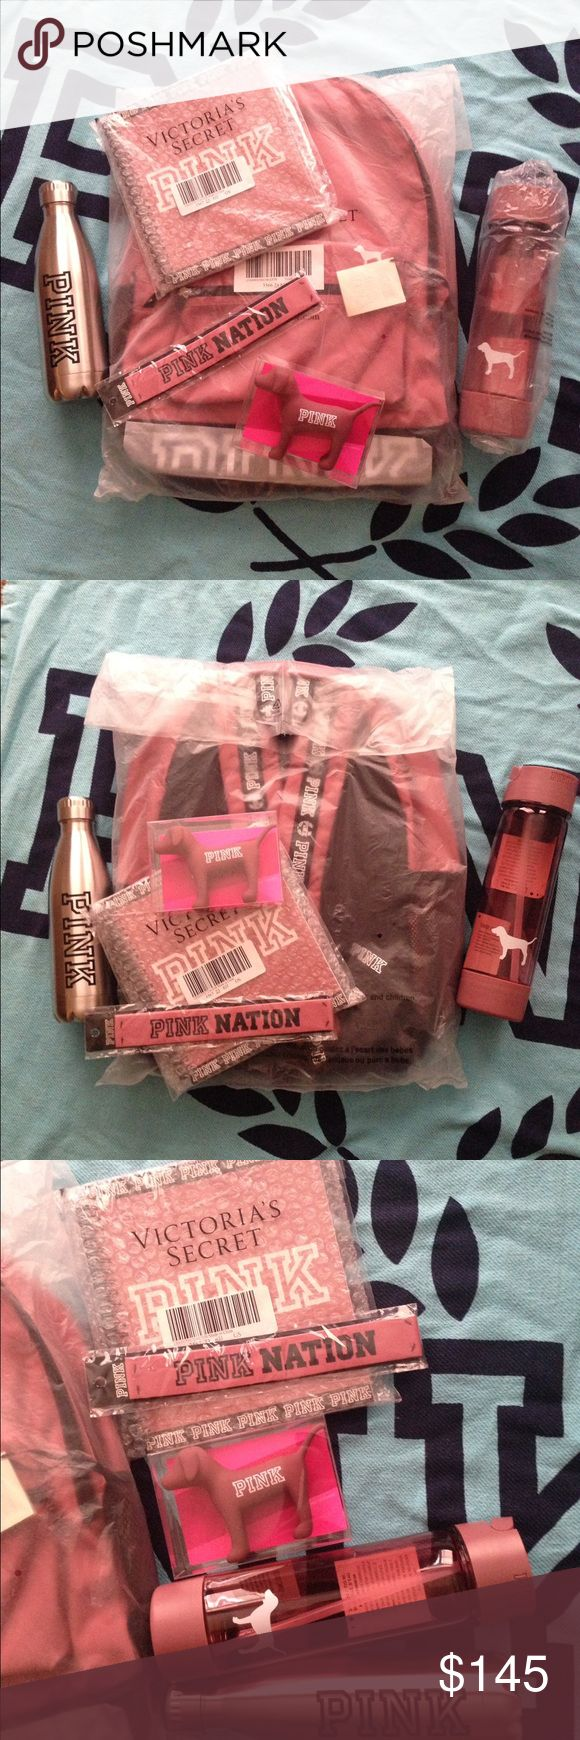 PINK Victoria's Secret Bundle Victoria's Secret PINK Bundle Set in Soft Begonia color.  Comes with Backpack, planner, dog, headband, straw water bottle, and stainless steel water bottle. All new, unused(except dog).   Selling as bundle only. Listed cheaper on Ⓜ️ercari.   Will add any other items from my page at a discount to this bundle. PINK Victoria's Secret Bags Backpacks